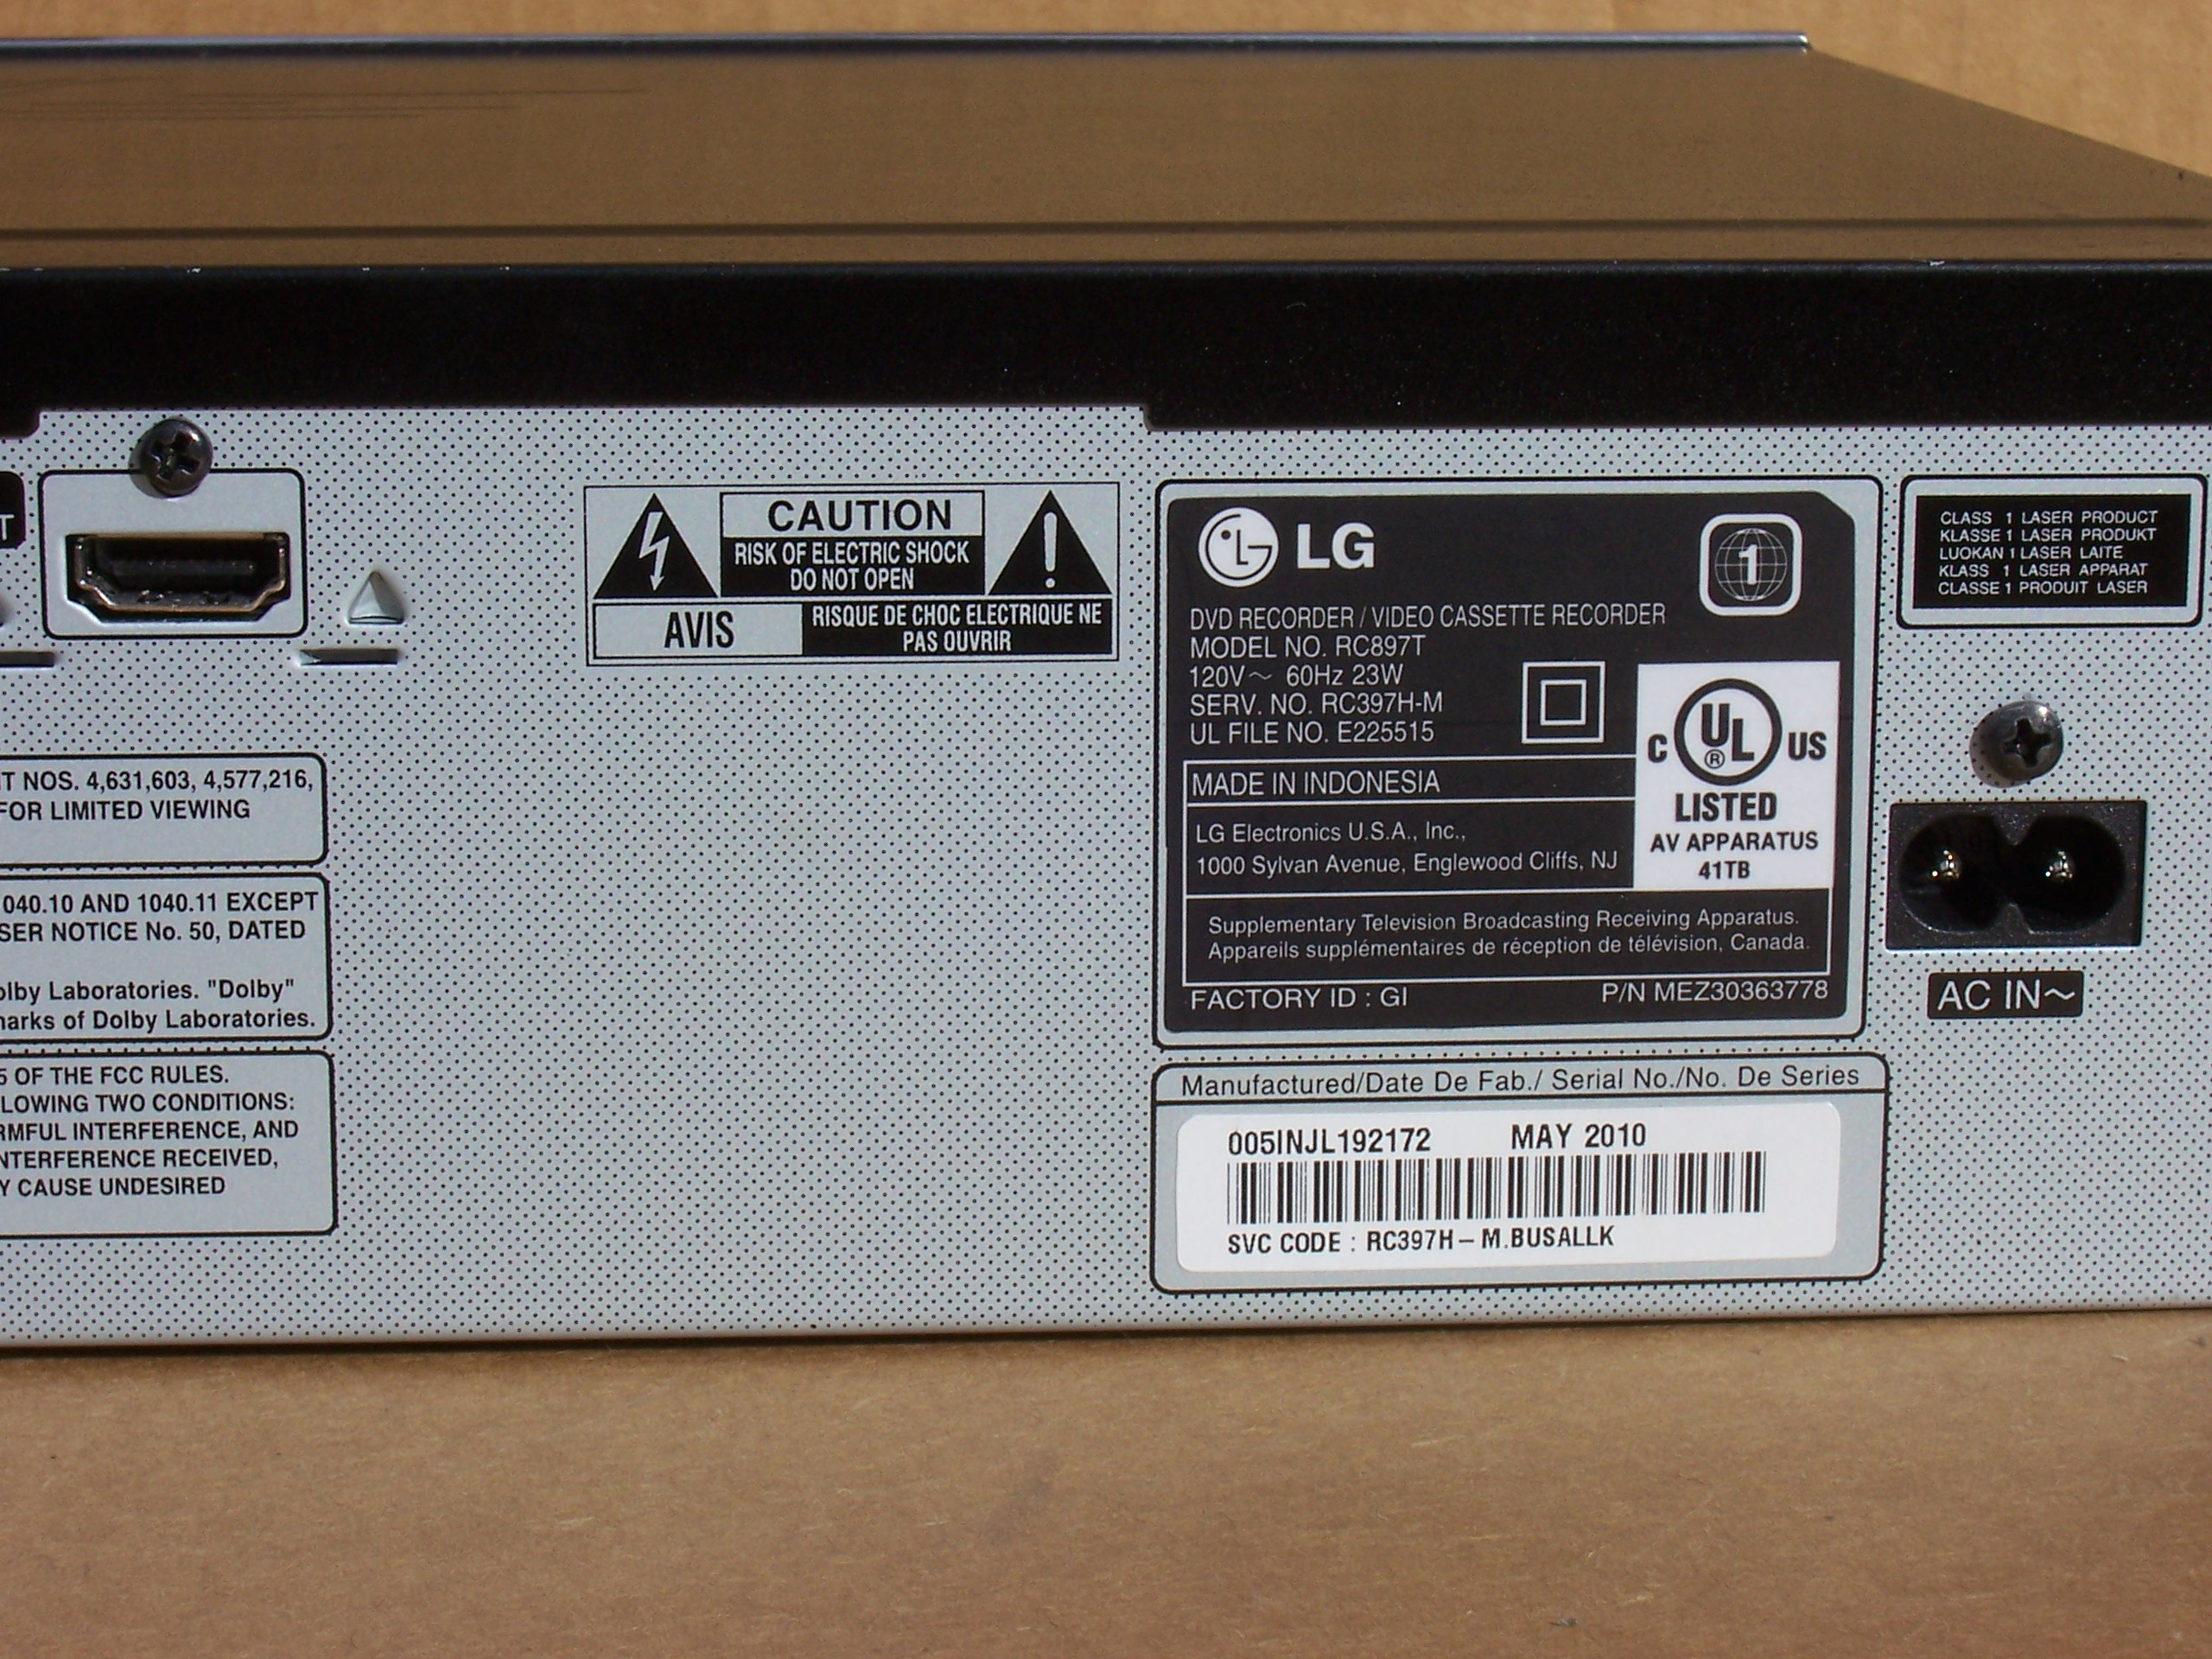 LG RC897T Super Multi DVD-Recorder ...